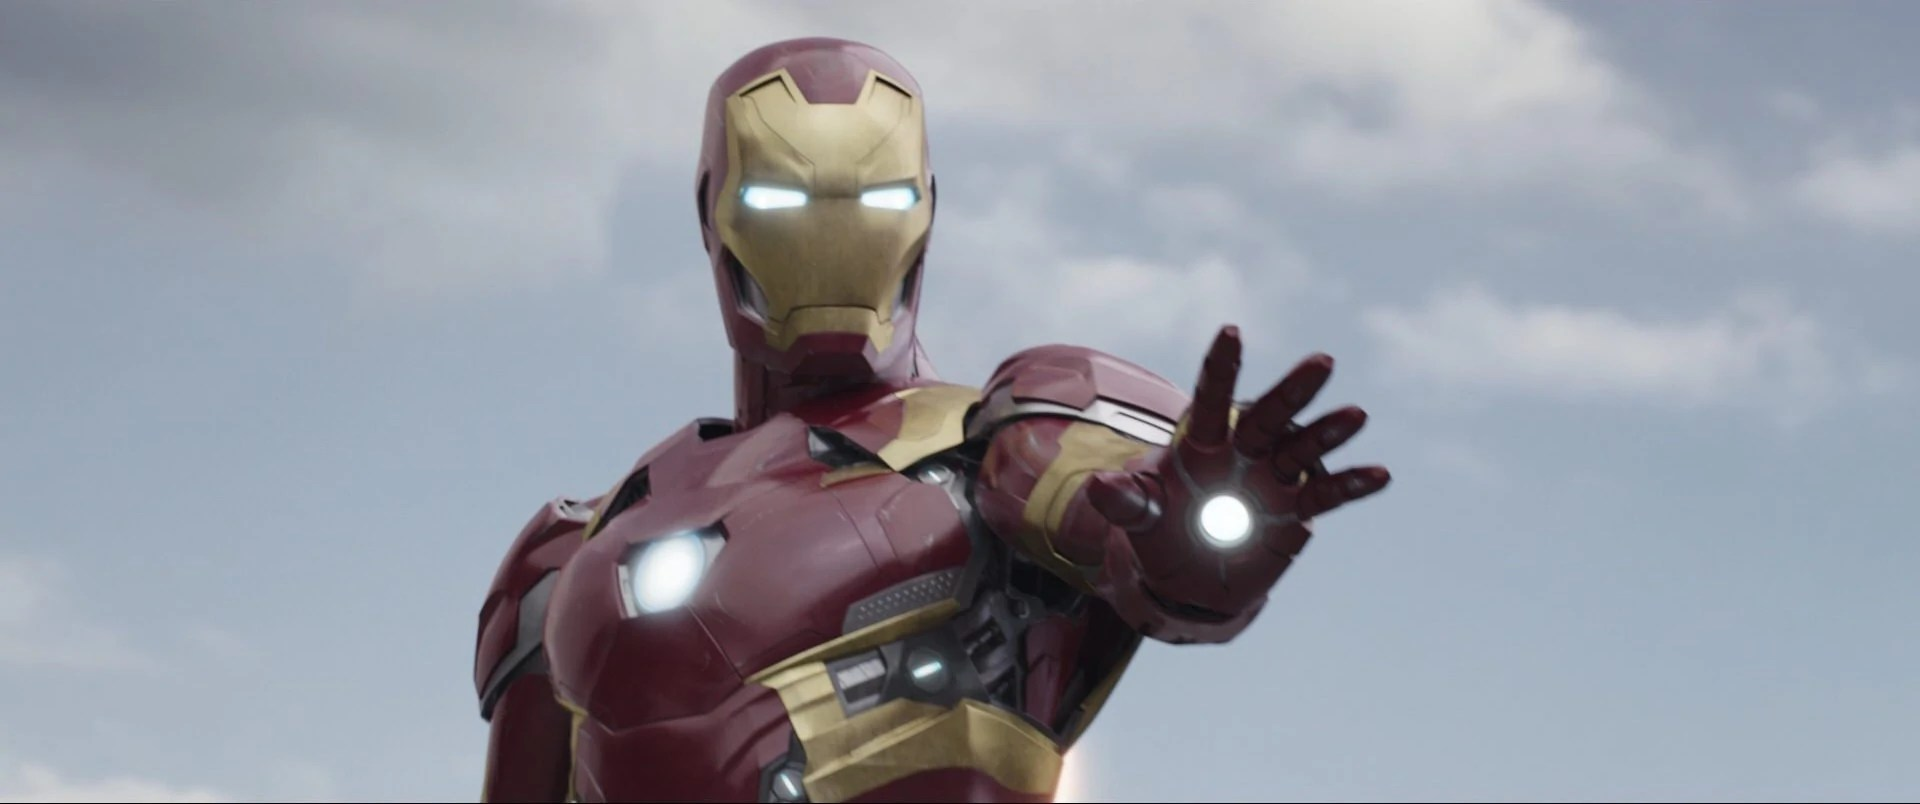 Iron Spider Armor Marvel Cinematic Universe Wiki - Year of